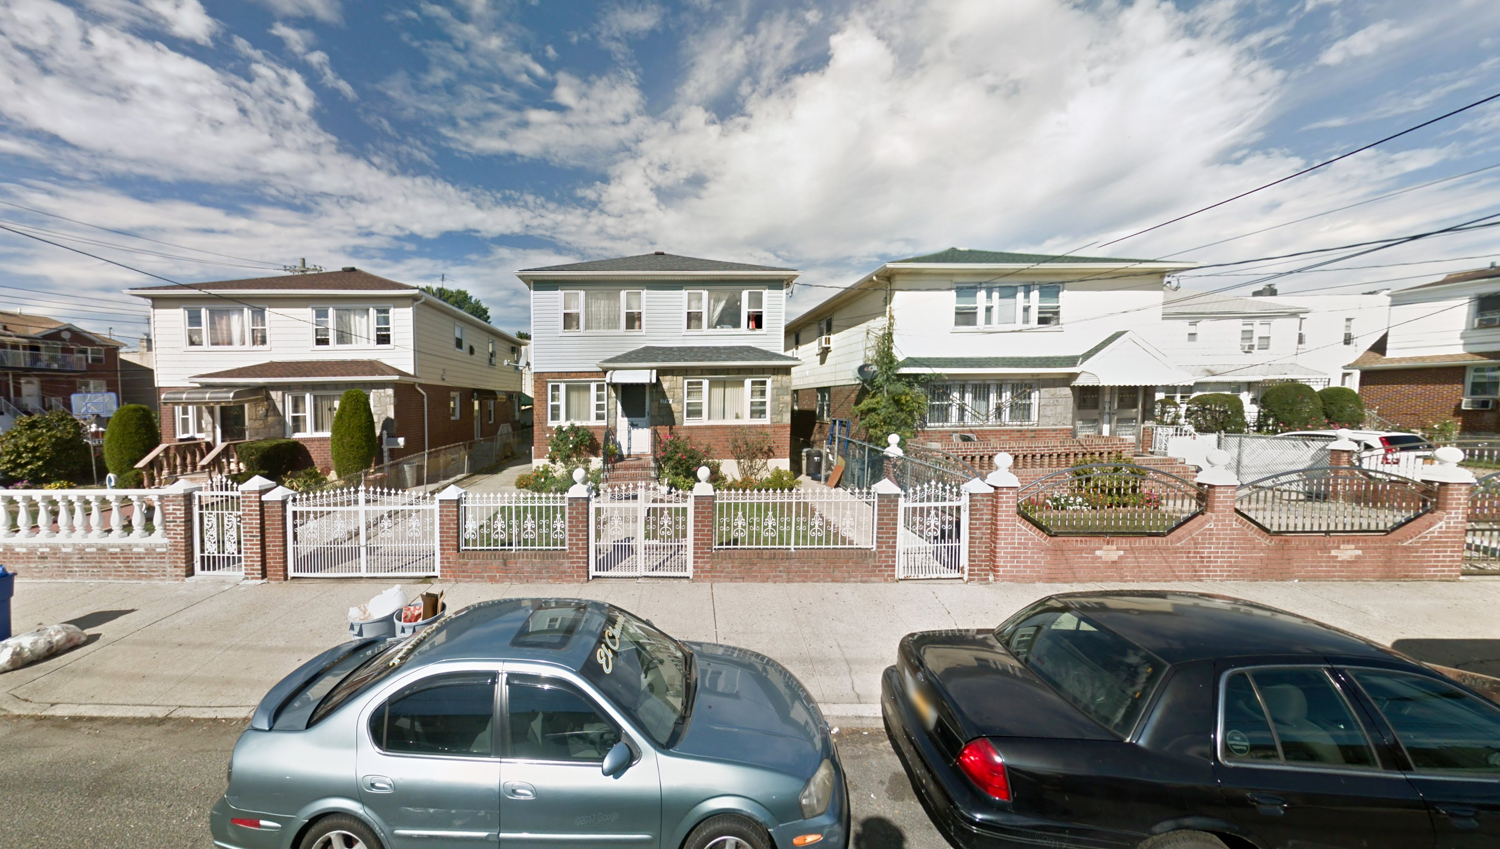 777 Glenmore Avenue, via Google Maps